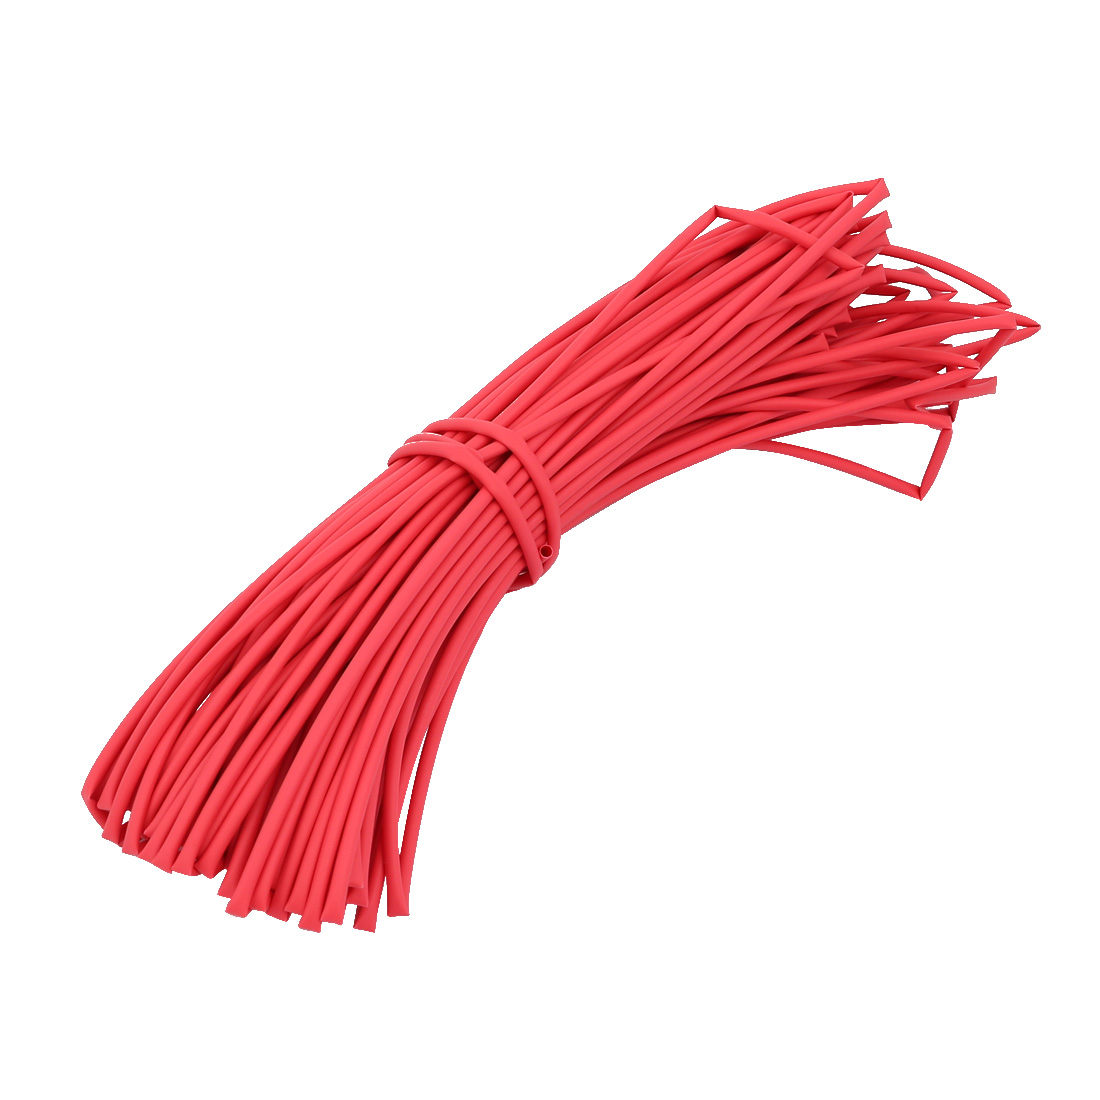 Polyolefin Heat Shrinkable Tube Wire Cable Sleeve 25 Meters Length 2mm Inner Dia Red